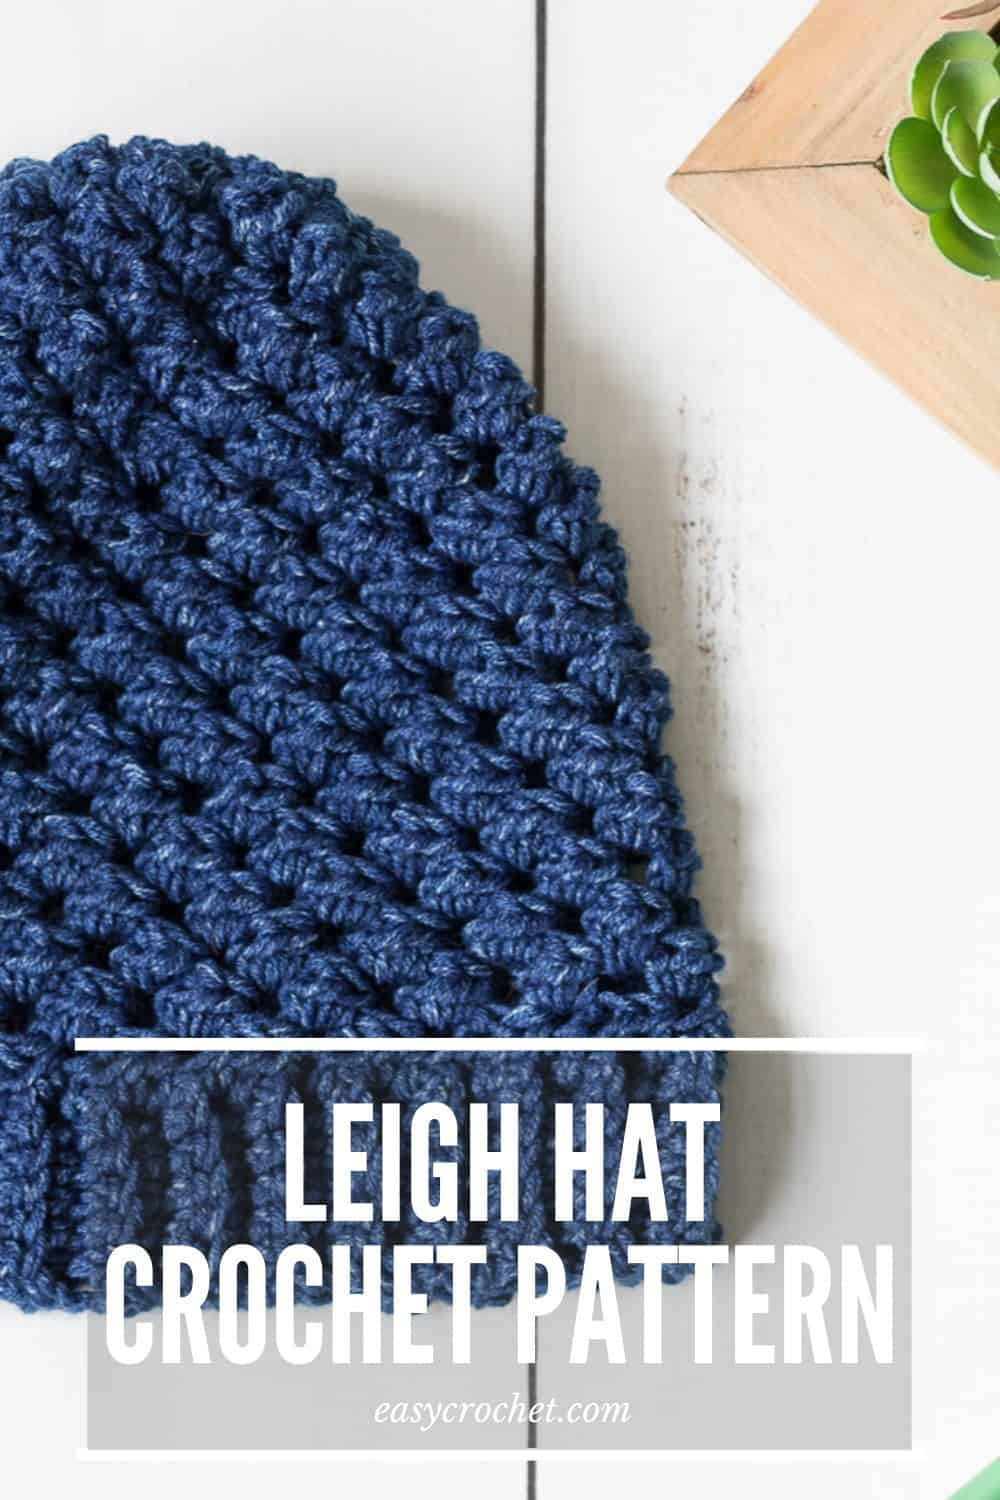 Leigh Hat Crochet Pattern - free #hatnothate crochet pattern for Lion Brand Yarn via @easycrochetcom